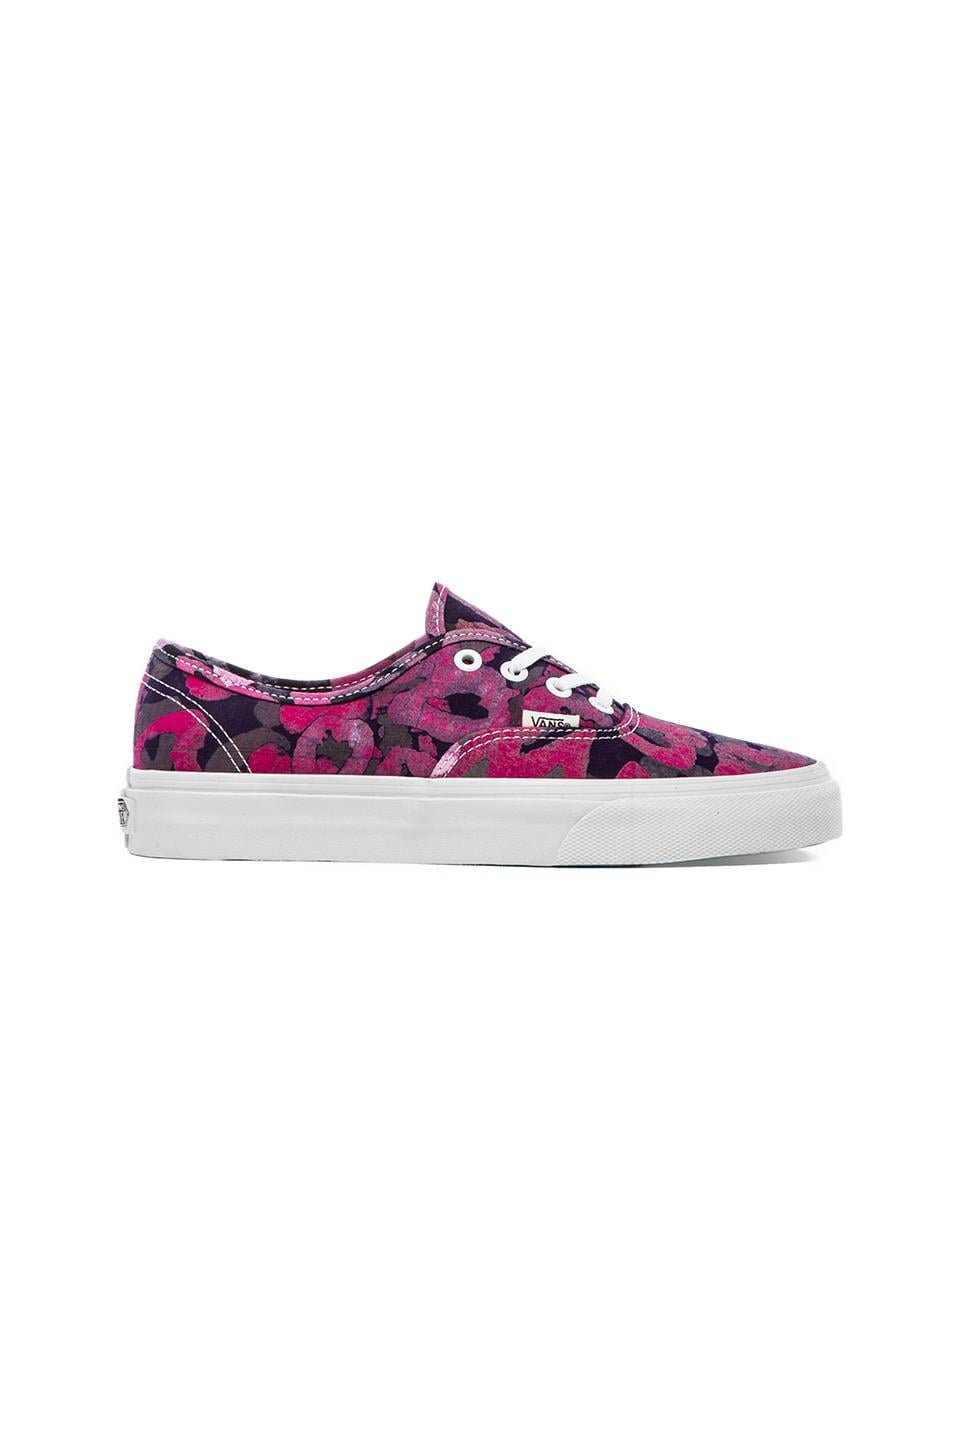 Vans Authentic Sneaker in Batik & Pink